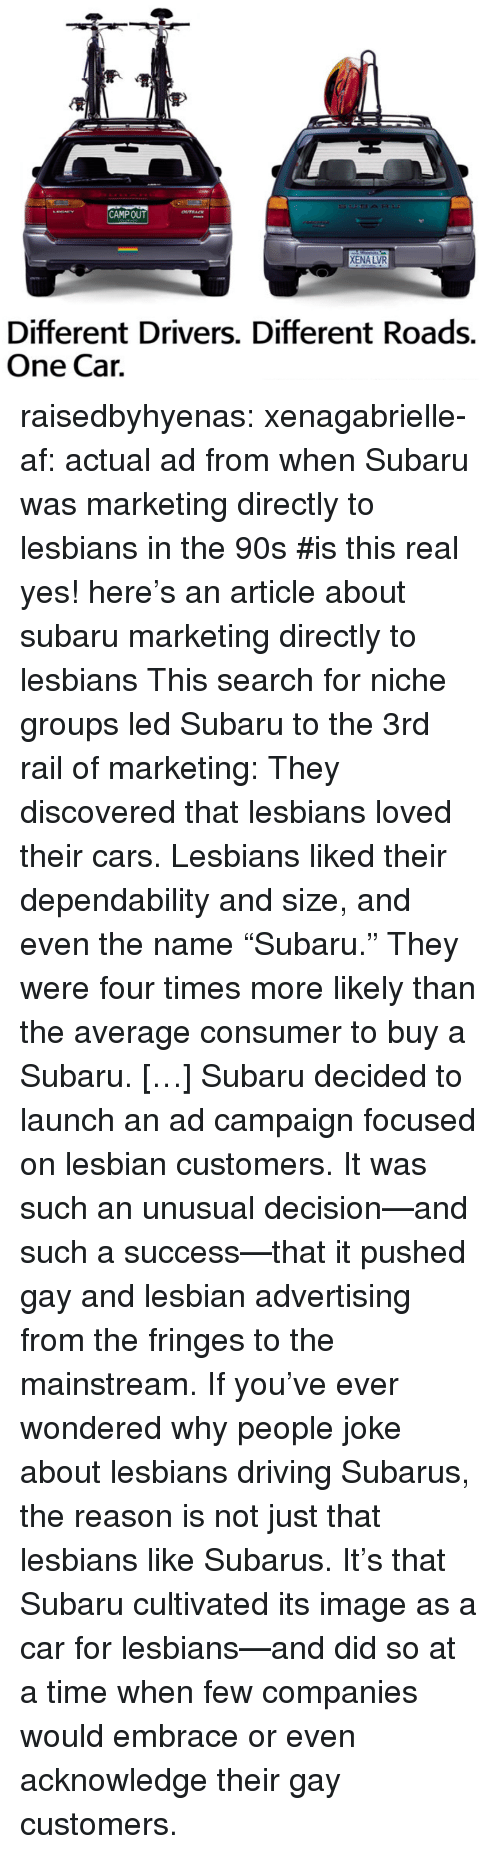 "subaru: CAMPOUT  XENA LVR  Different Drivers. Different Roads.  One Cair. raisedbyhyenas:  xenagabrielle-af: actual ad from when Subaru was marketing directly to lesbians in the 90s   #is this real     yes! here's an article about subaru marketing directly to lesbians    This search for niche groups led Subaru to the 3rd rail of marketing: They discovered that lesbians loved their cars. Lesbians liked their dependability and size, and even the name ""Subaru."" They were four times more likely than the average consumer to buy a Subaru. […] Subaru decided to launch an ad campaign focused on lesbian customers. It was such an unusual decision—and such a success—that it pushed gay and lesbian advertising from the fringes to the mainstream. If you've ever wondered why people joke about lesbians driving Subarus, the reason is not just that lesbians like Subarus. It's that Subaru cultivated its image as a car for lesbians—and did so at a time when few companies would embrace or even acknowledge their gay customers."